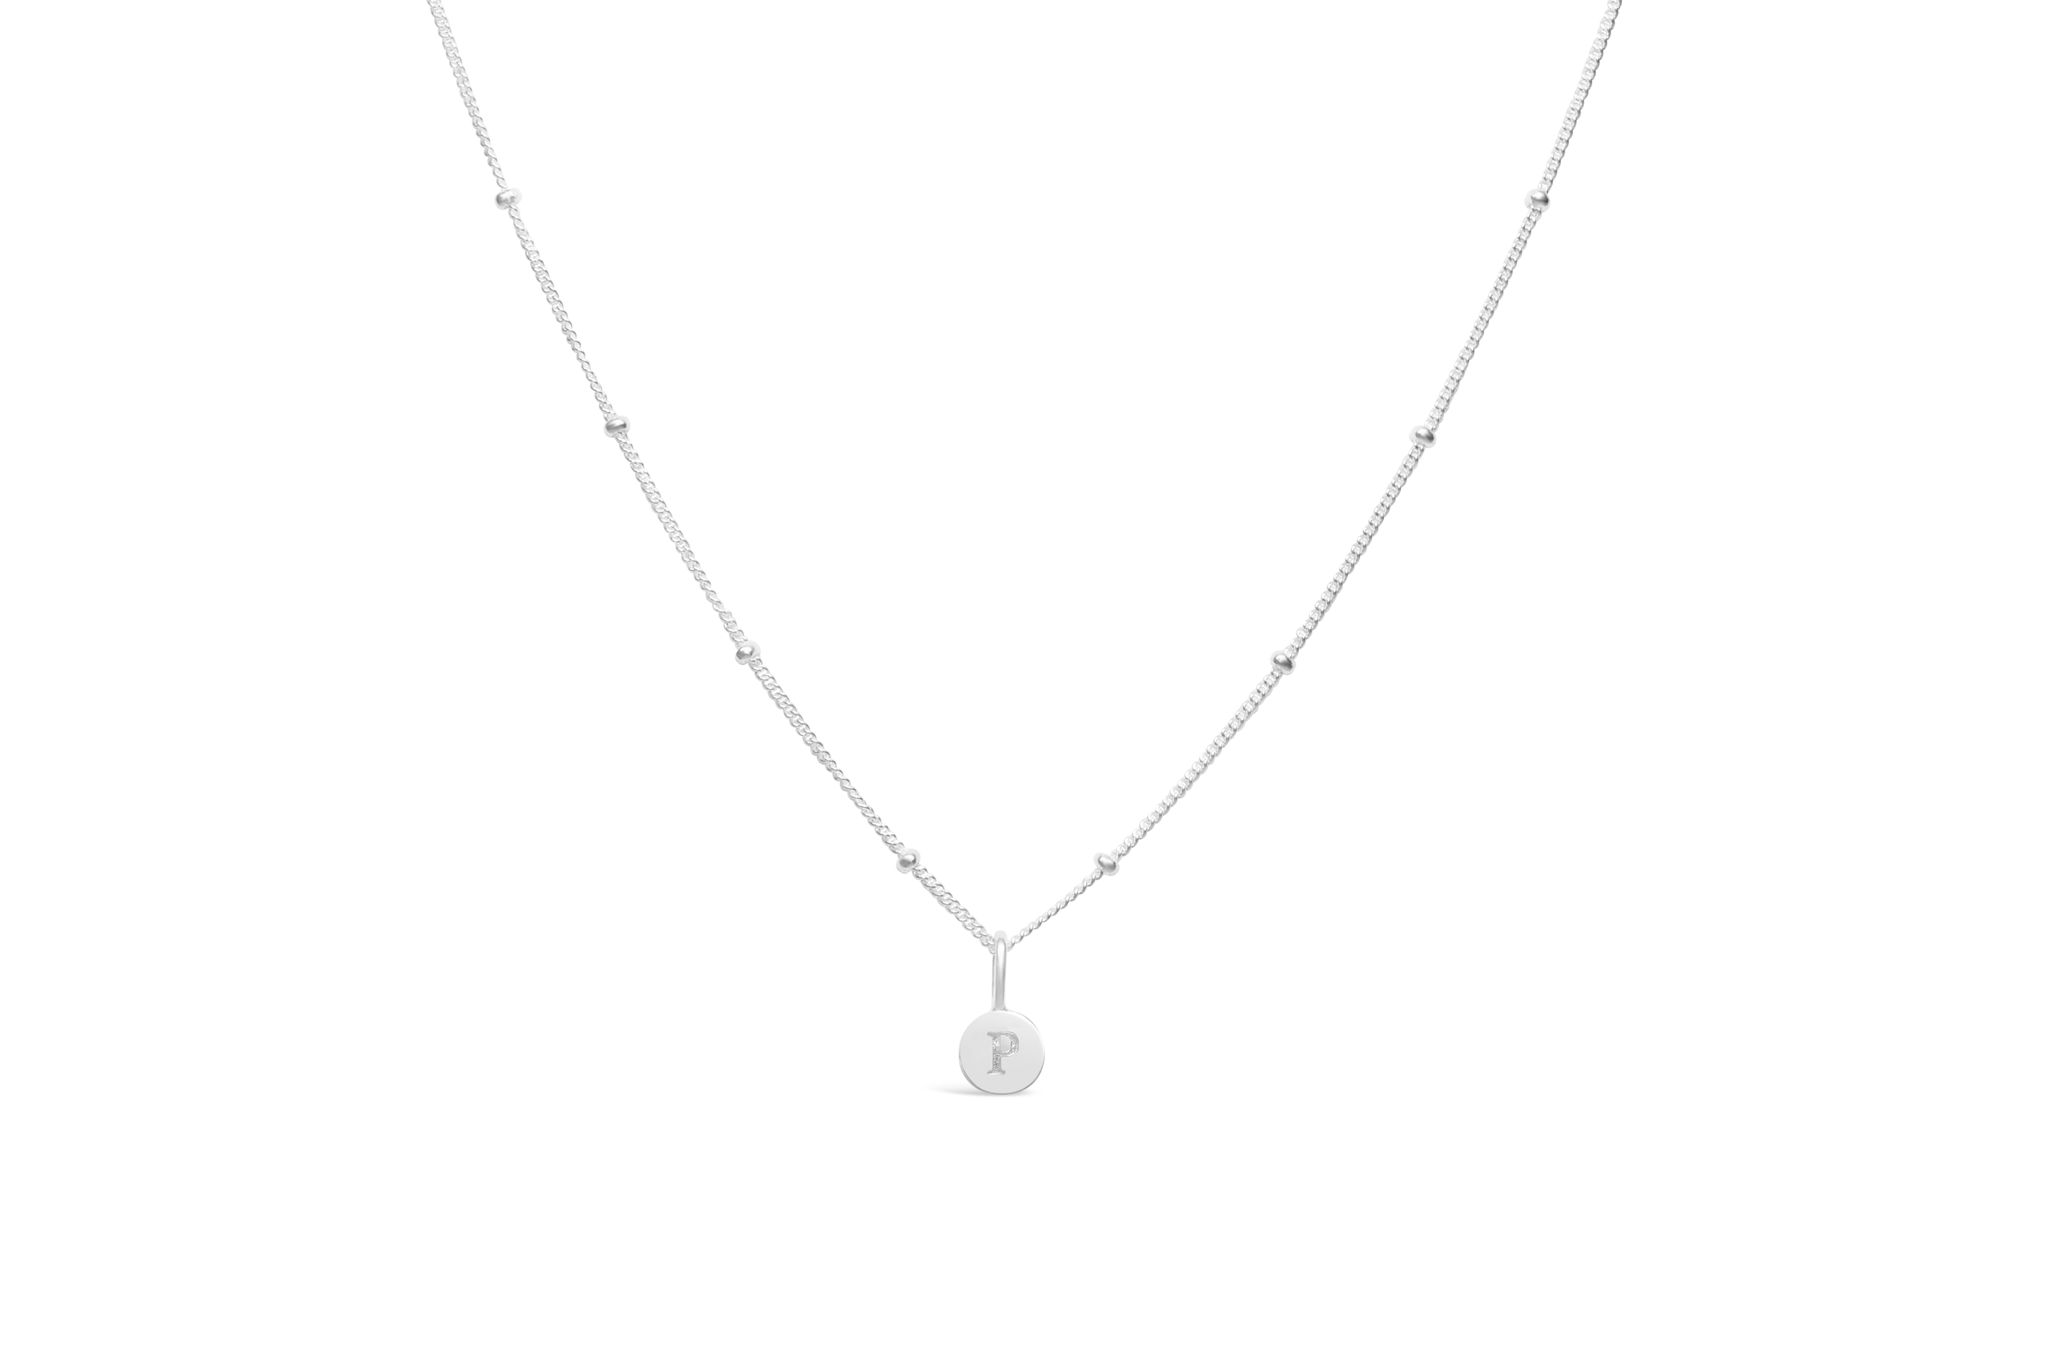 Diamond Cut Love Letter Necklace - P Sterling Silver